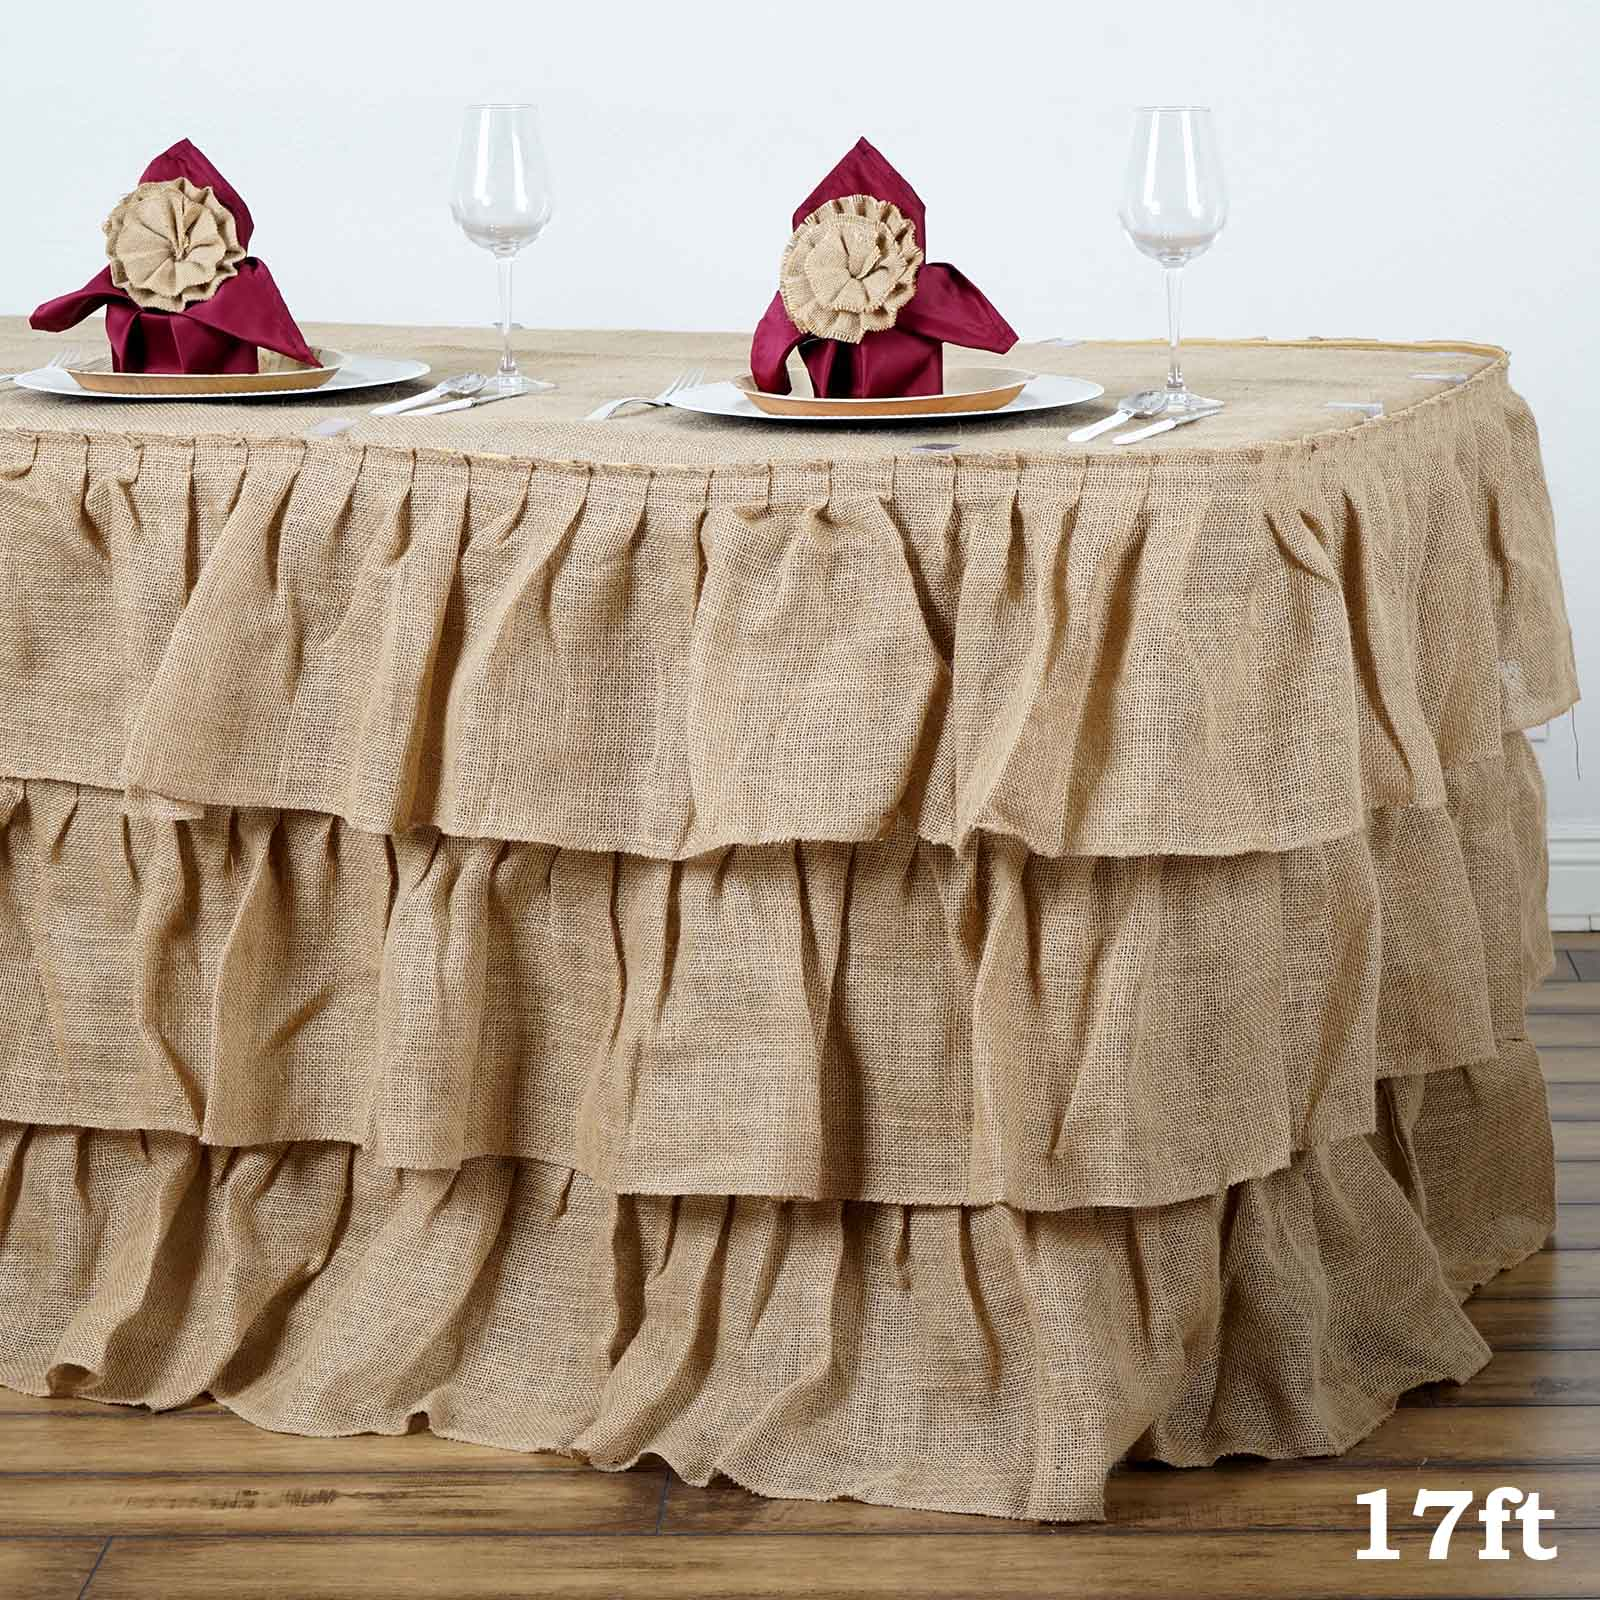 Details About 3 Tier Rustic Elegant Ruffled Burlap Table Skirt Table Covers For Wedding Decor